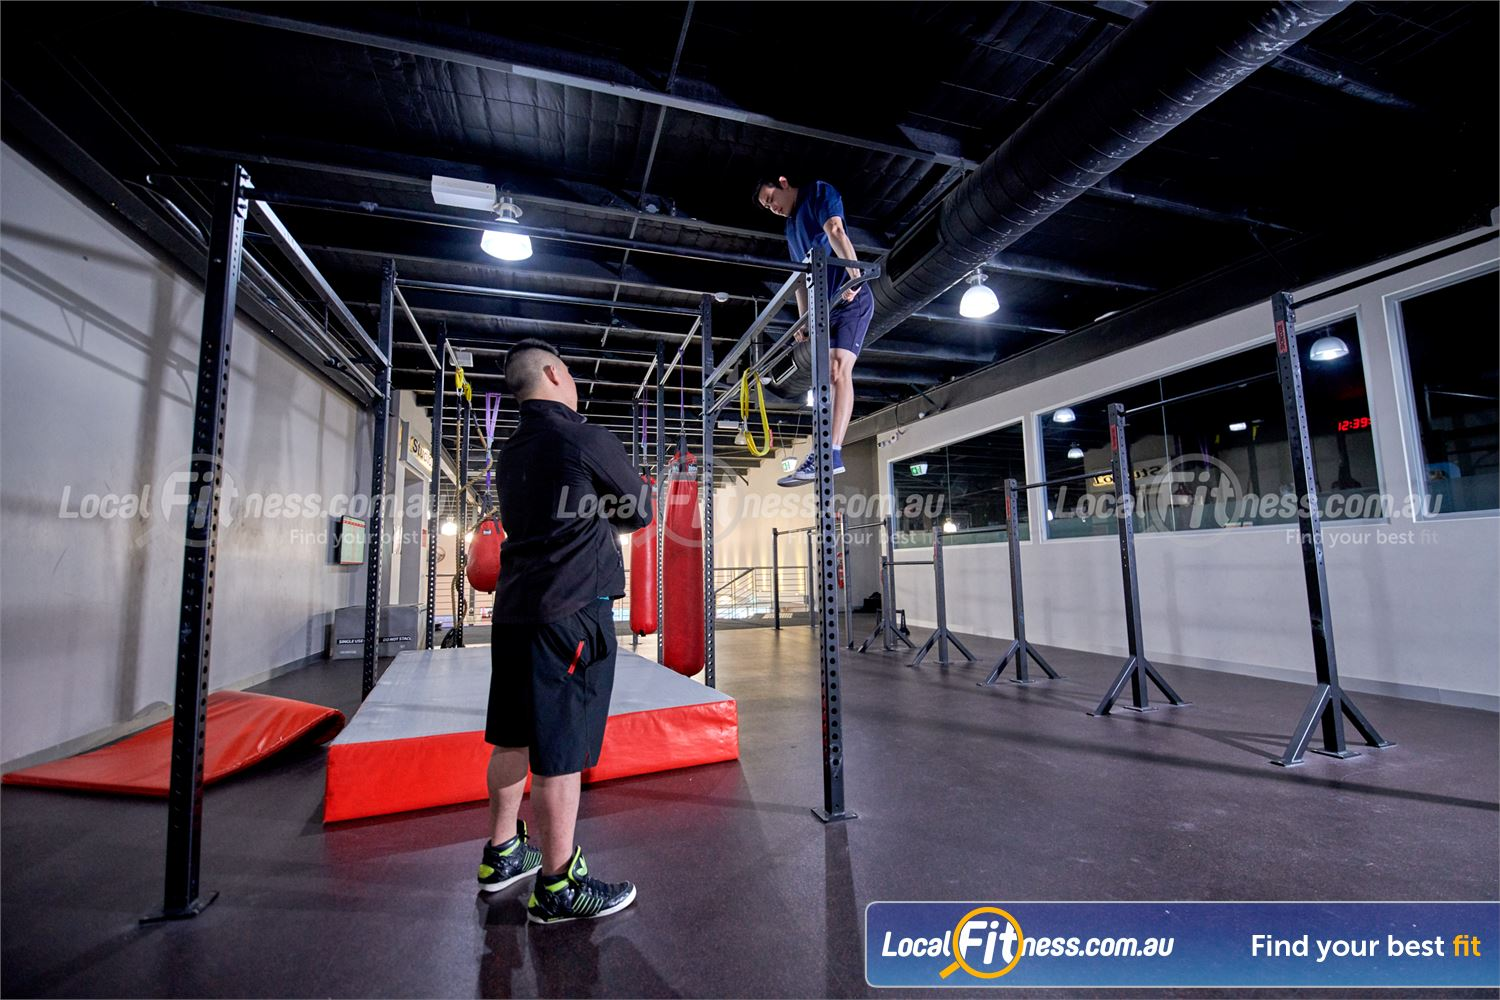 Fitness First Glen Waverley Perform the art of muscle ups in our Callisthenics training area.